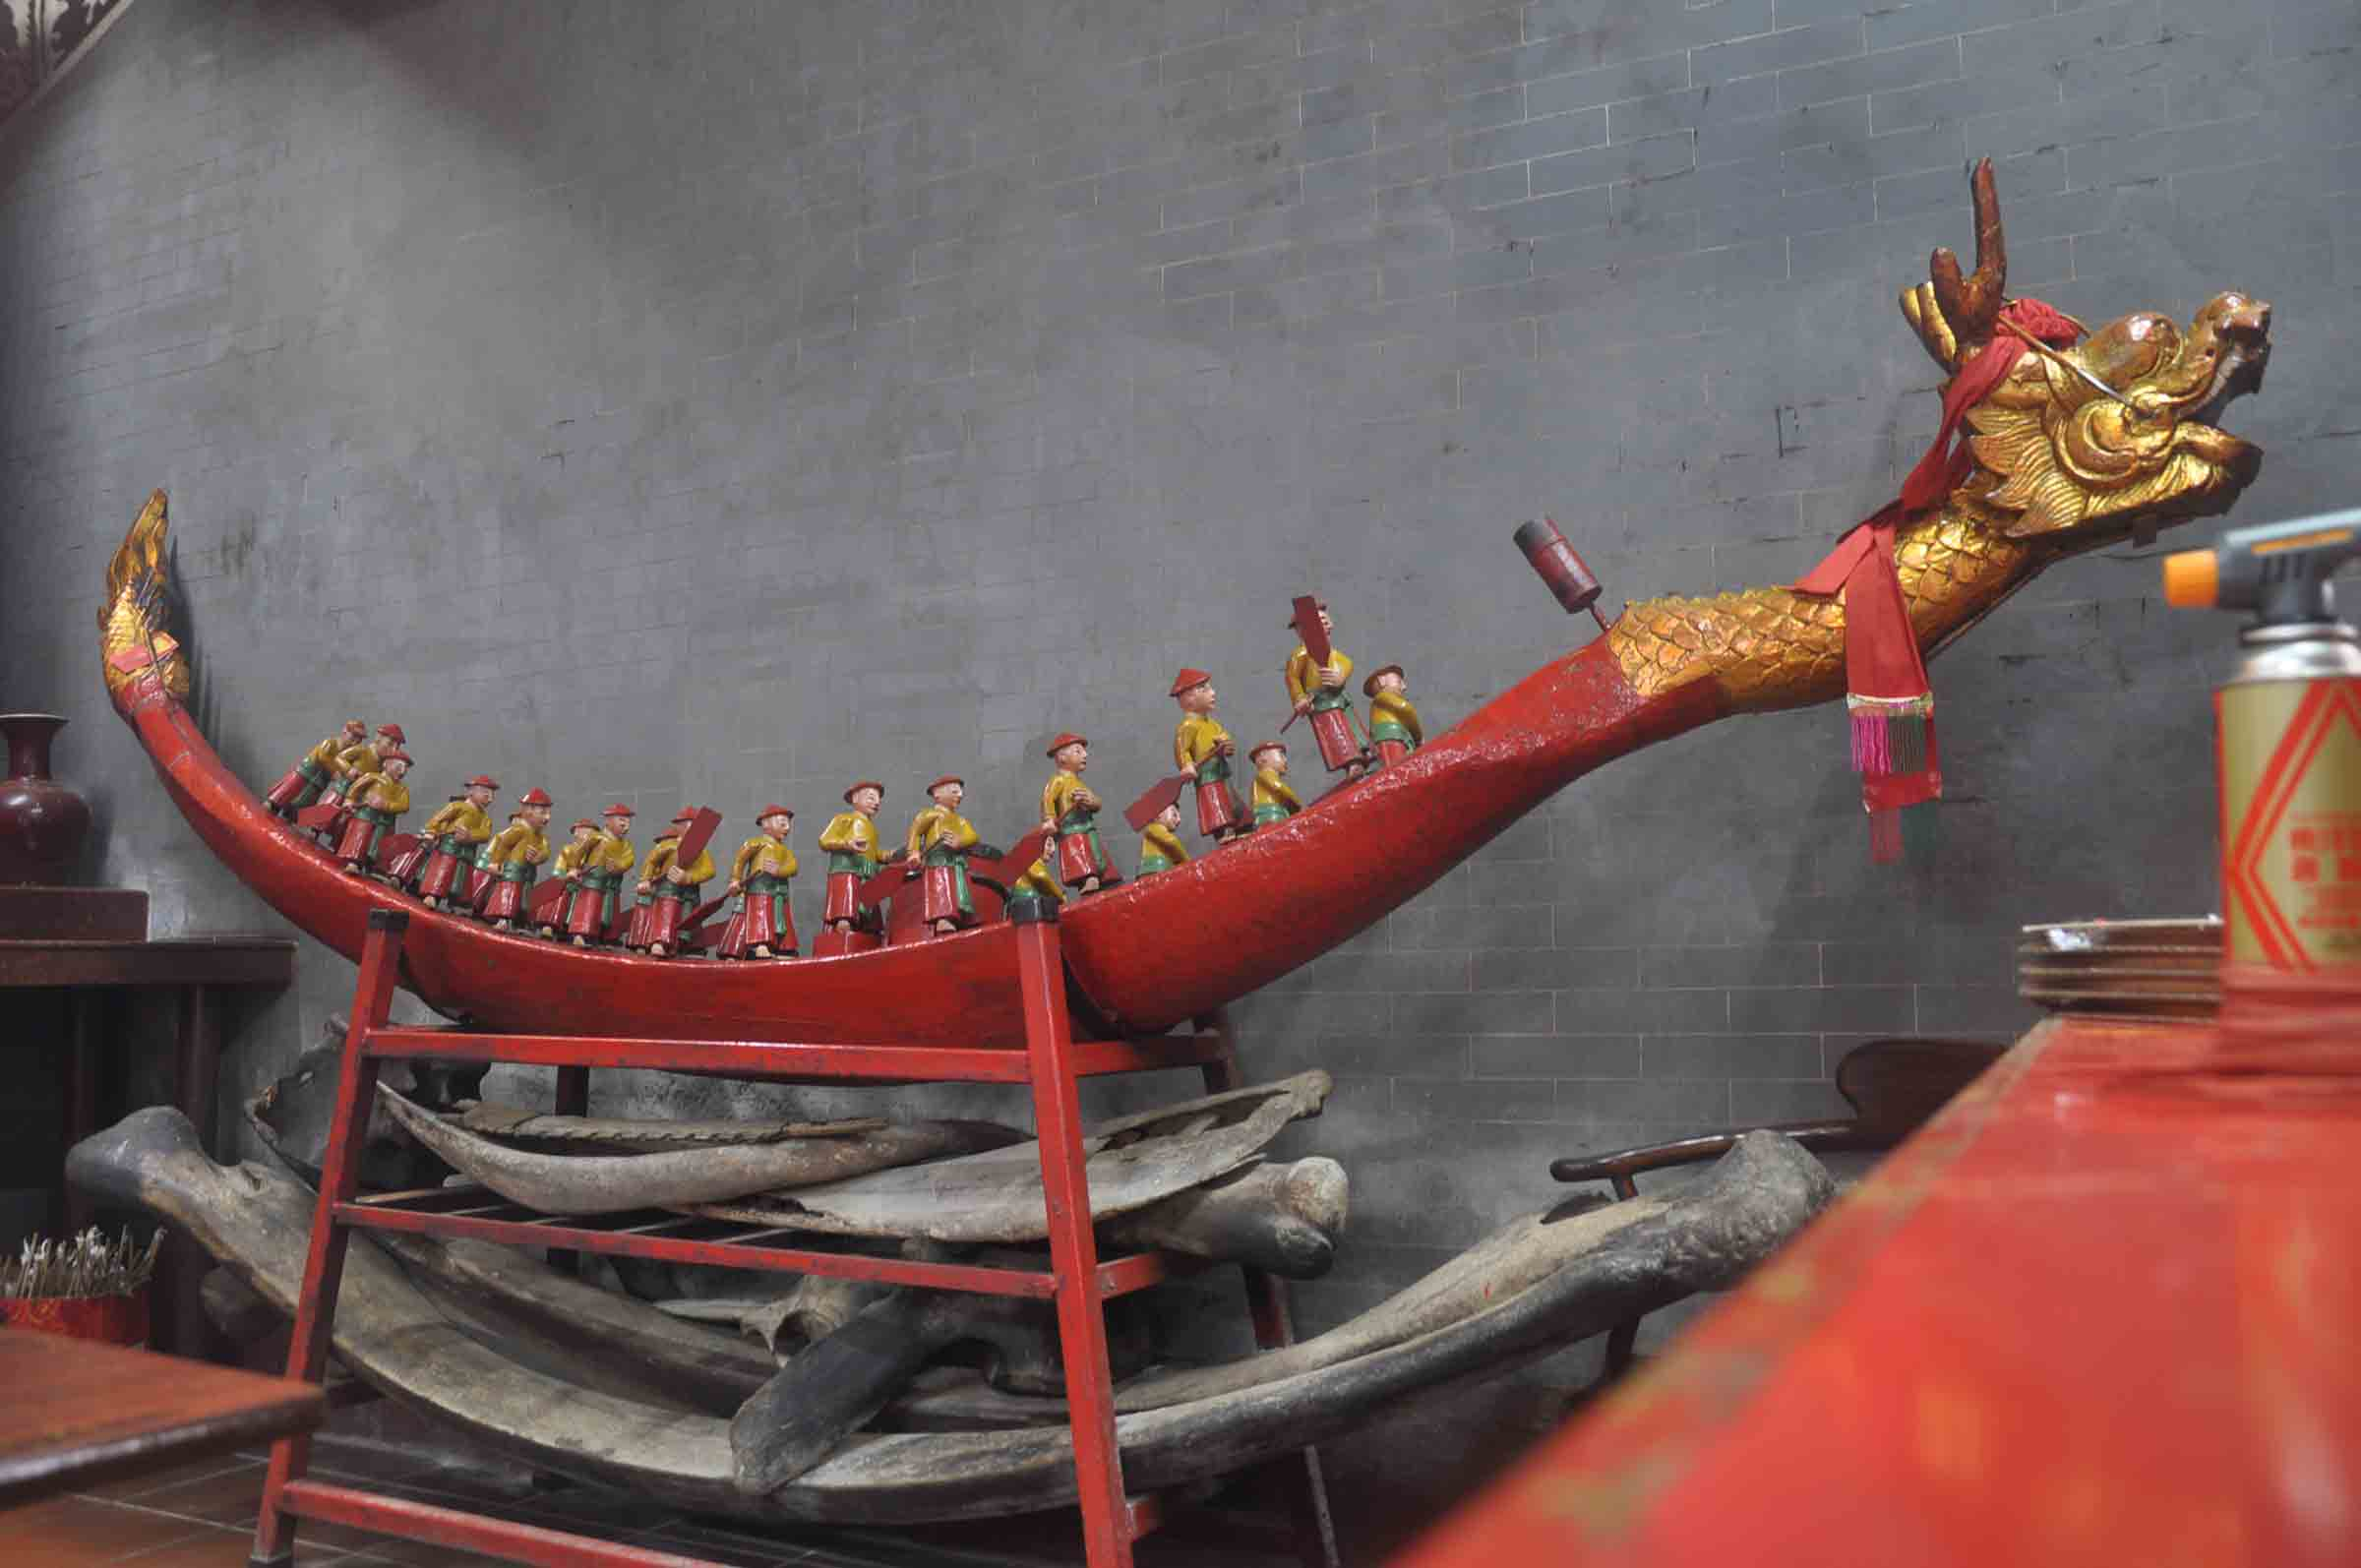 Coloane Village Temples: Tam Kung Temple dragon boat